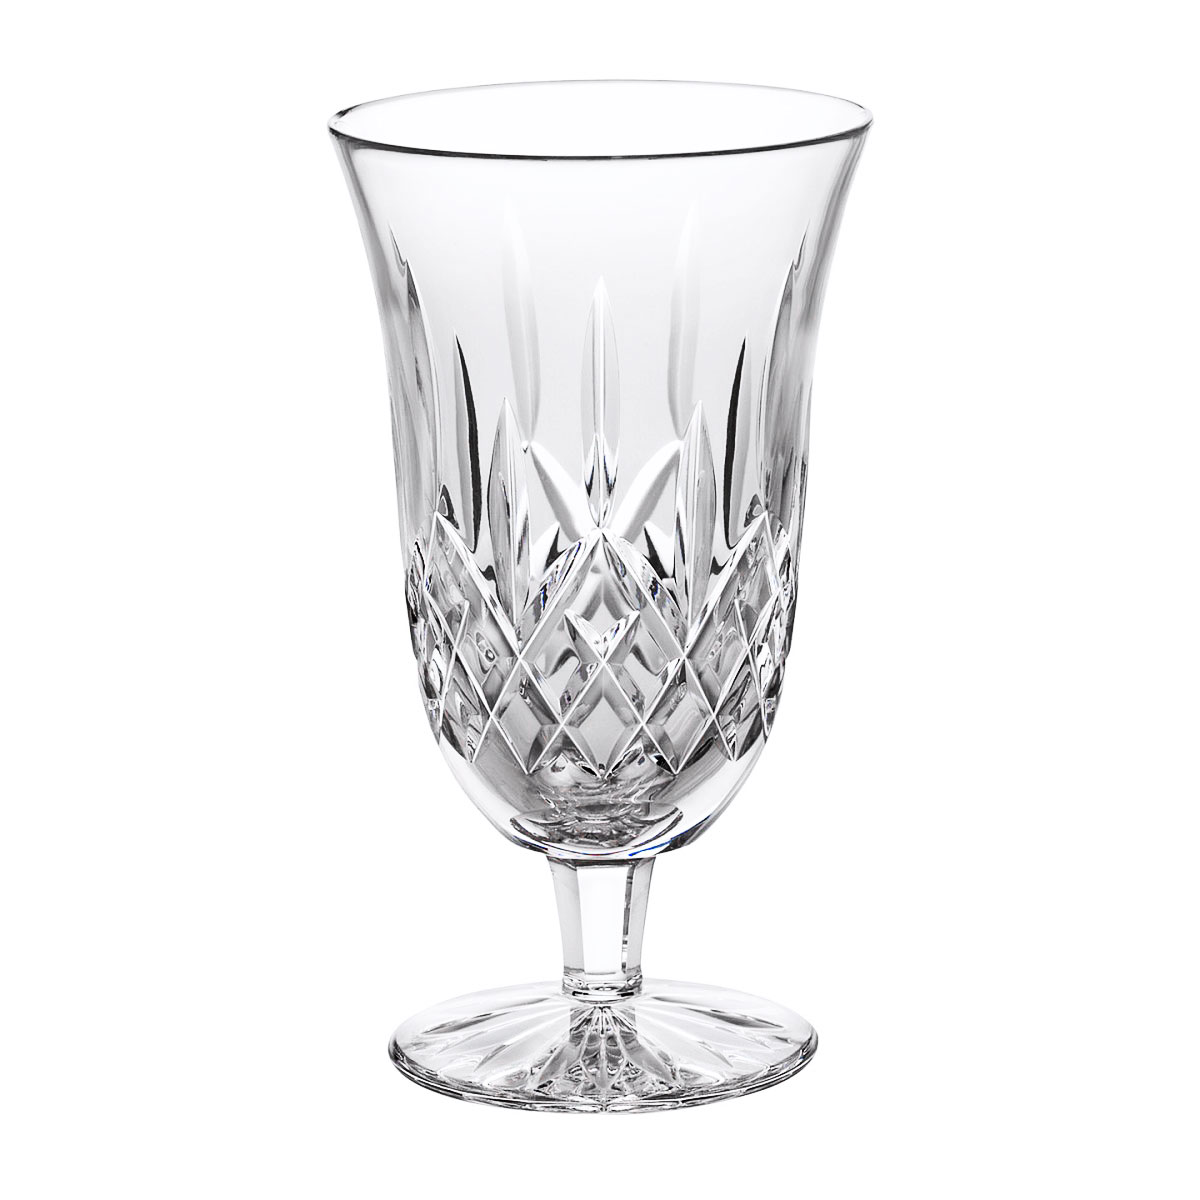 Waterford Crystal, Lismore Footed Crystal Iced Beverage Glass, Pair